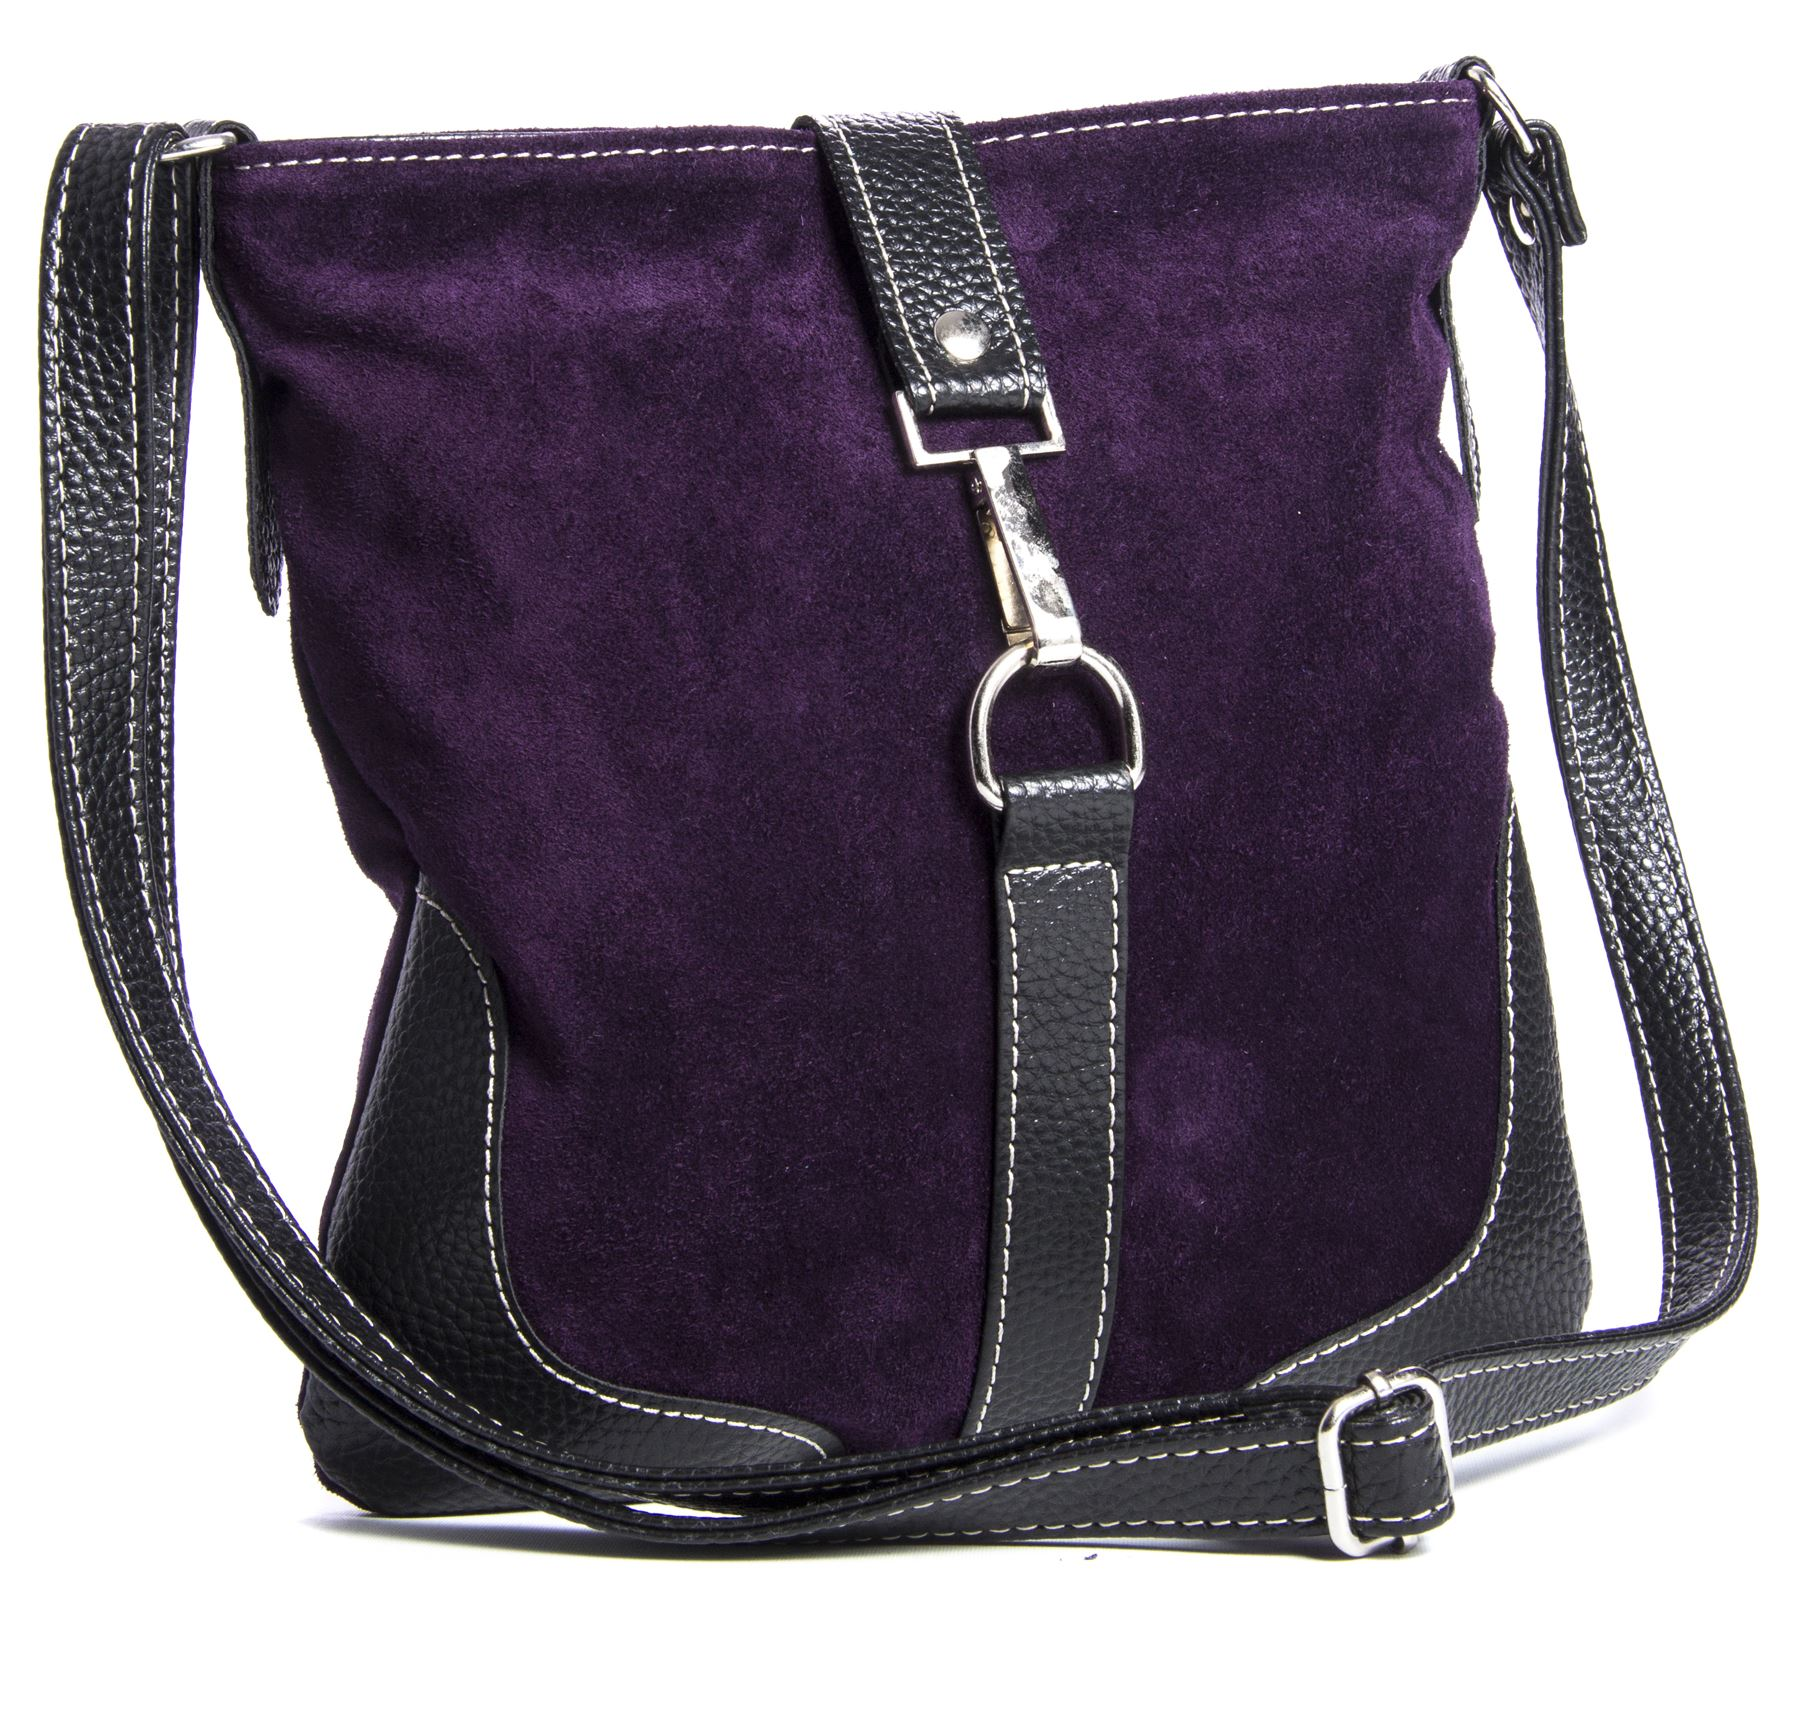 265 best Bags/purses images on Pinterest   Cloth bags ...  Dog Walking Bag Cross Body